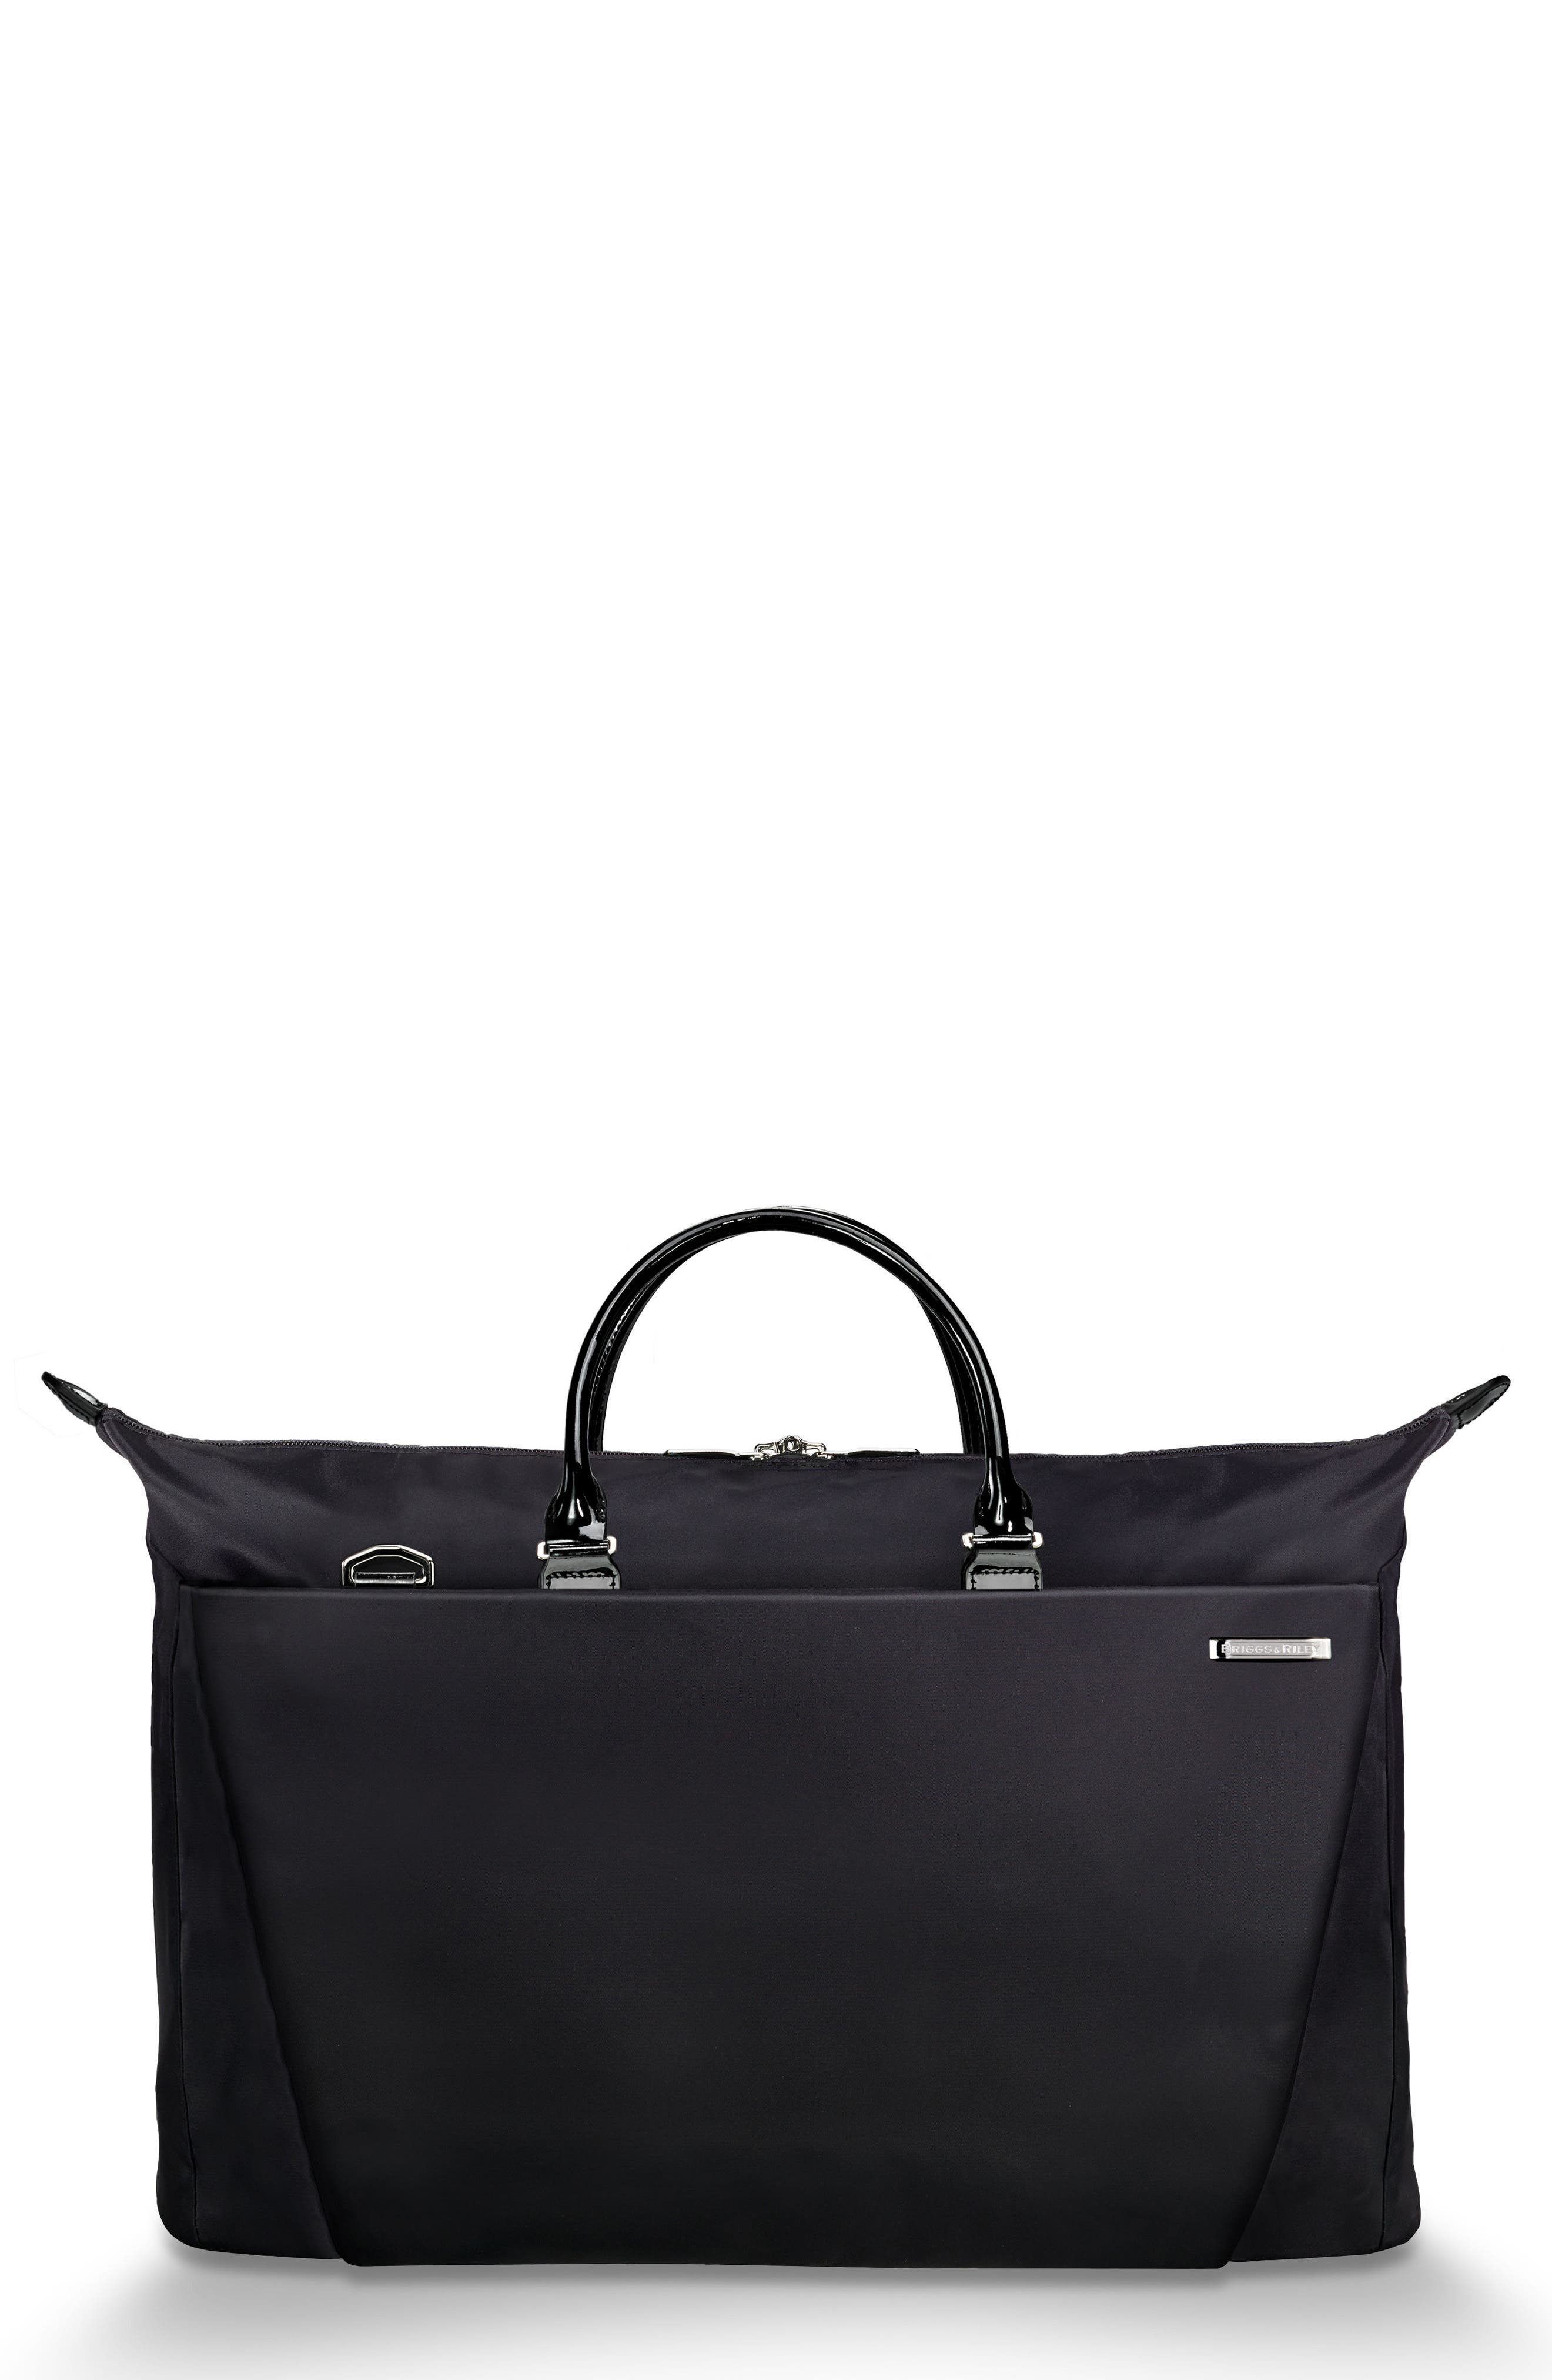 Alternate Image 1 Selected - Briggs & Riley Sympatico Duffel Bag